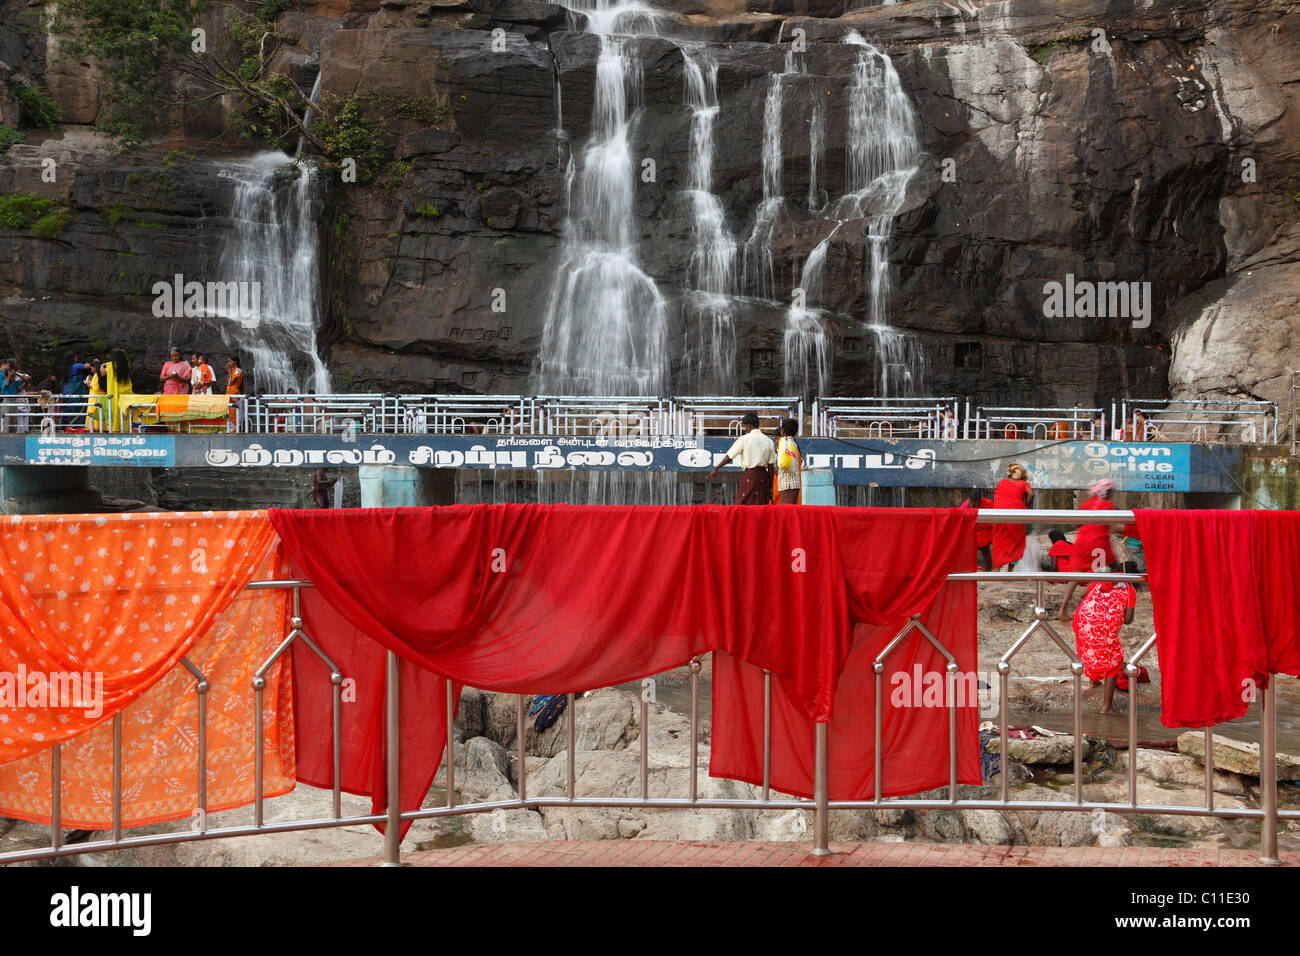 Red cloths hanging out to dry on a railing, Kutralam waterfalls, Peraruvi, Main Falls, Kuttralam, Kuttalam, Courtallam - Stock Image